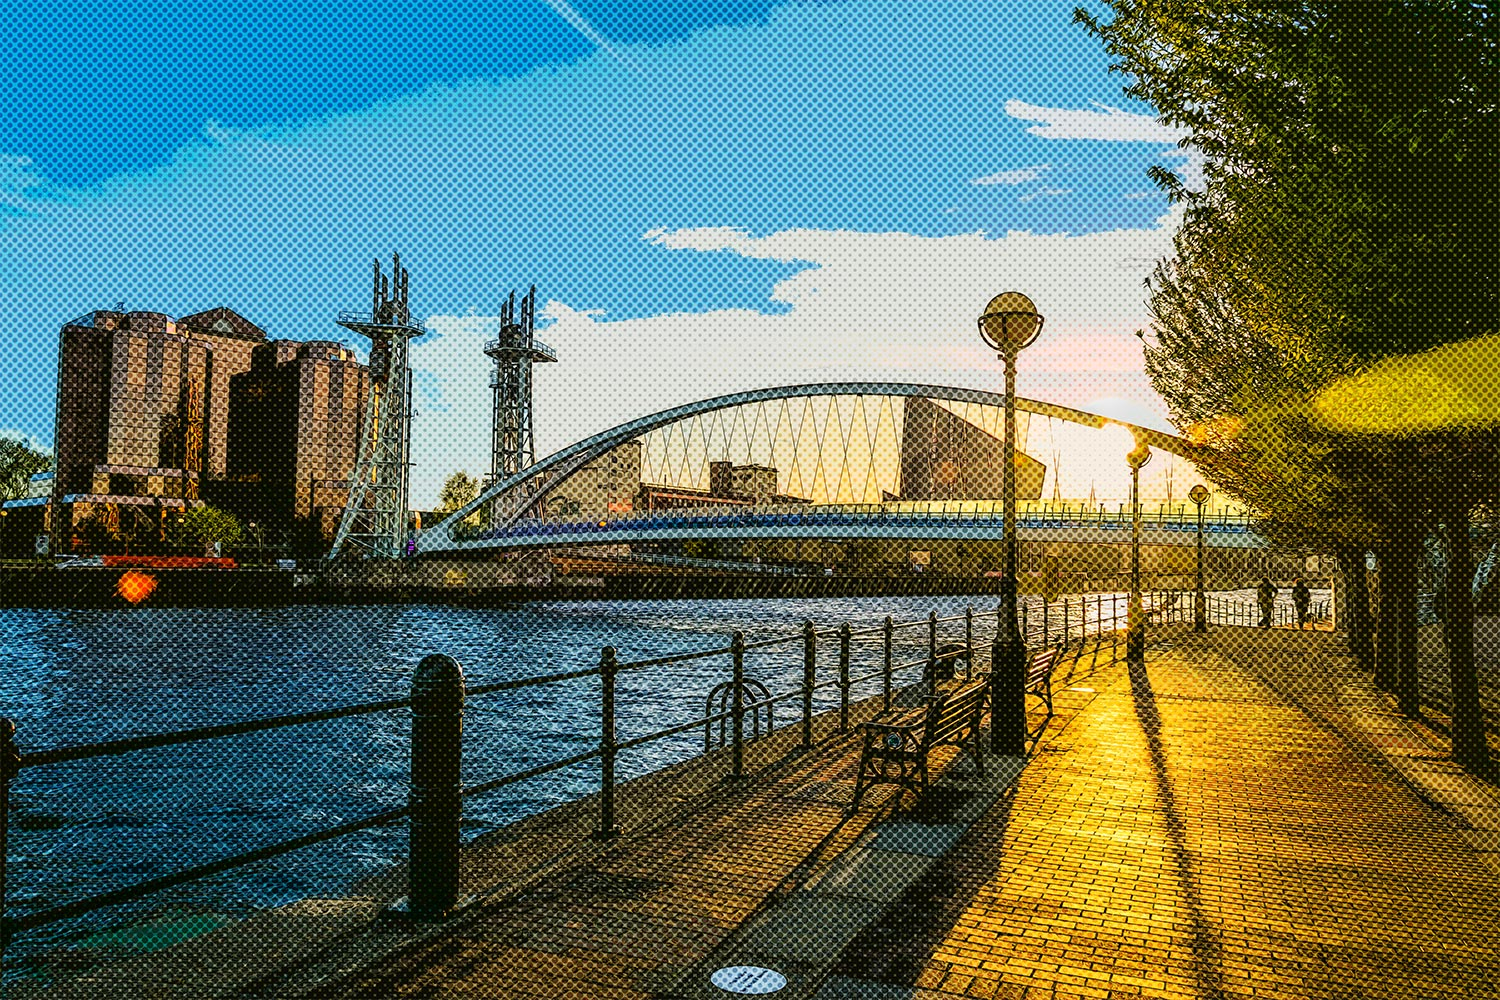 Image of Salford Quays, Manchester